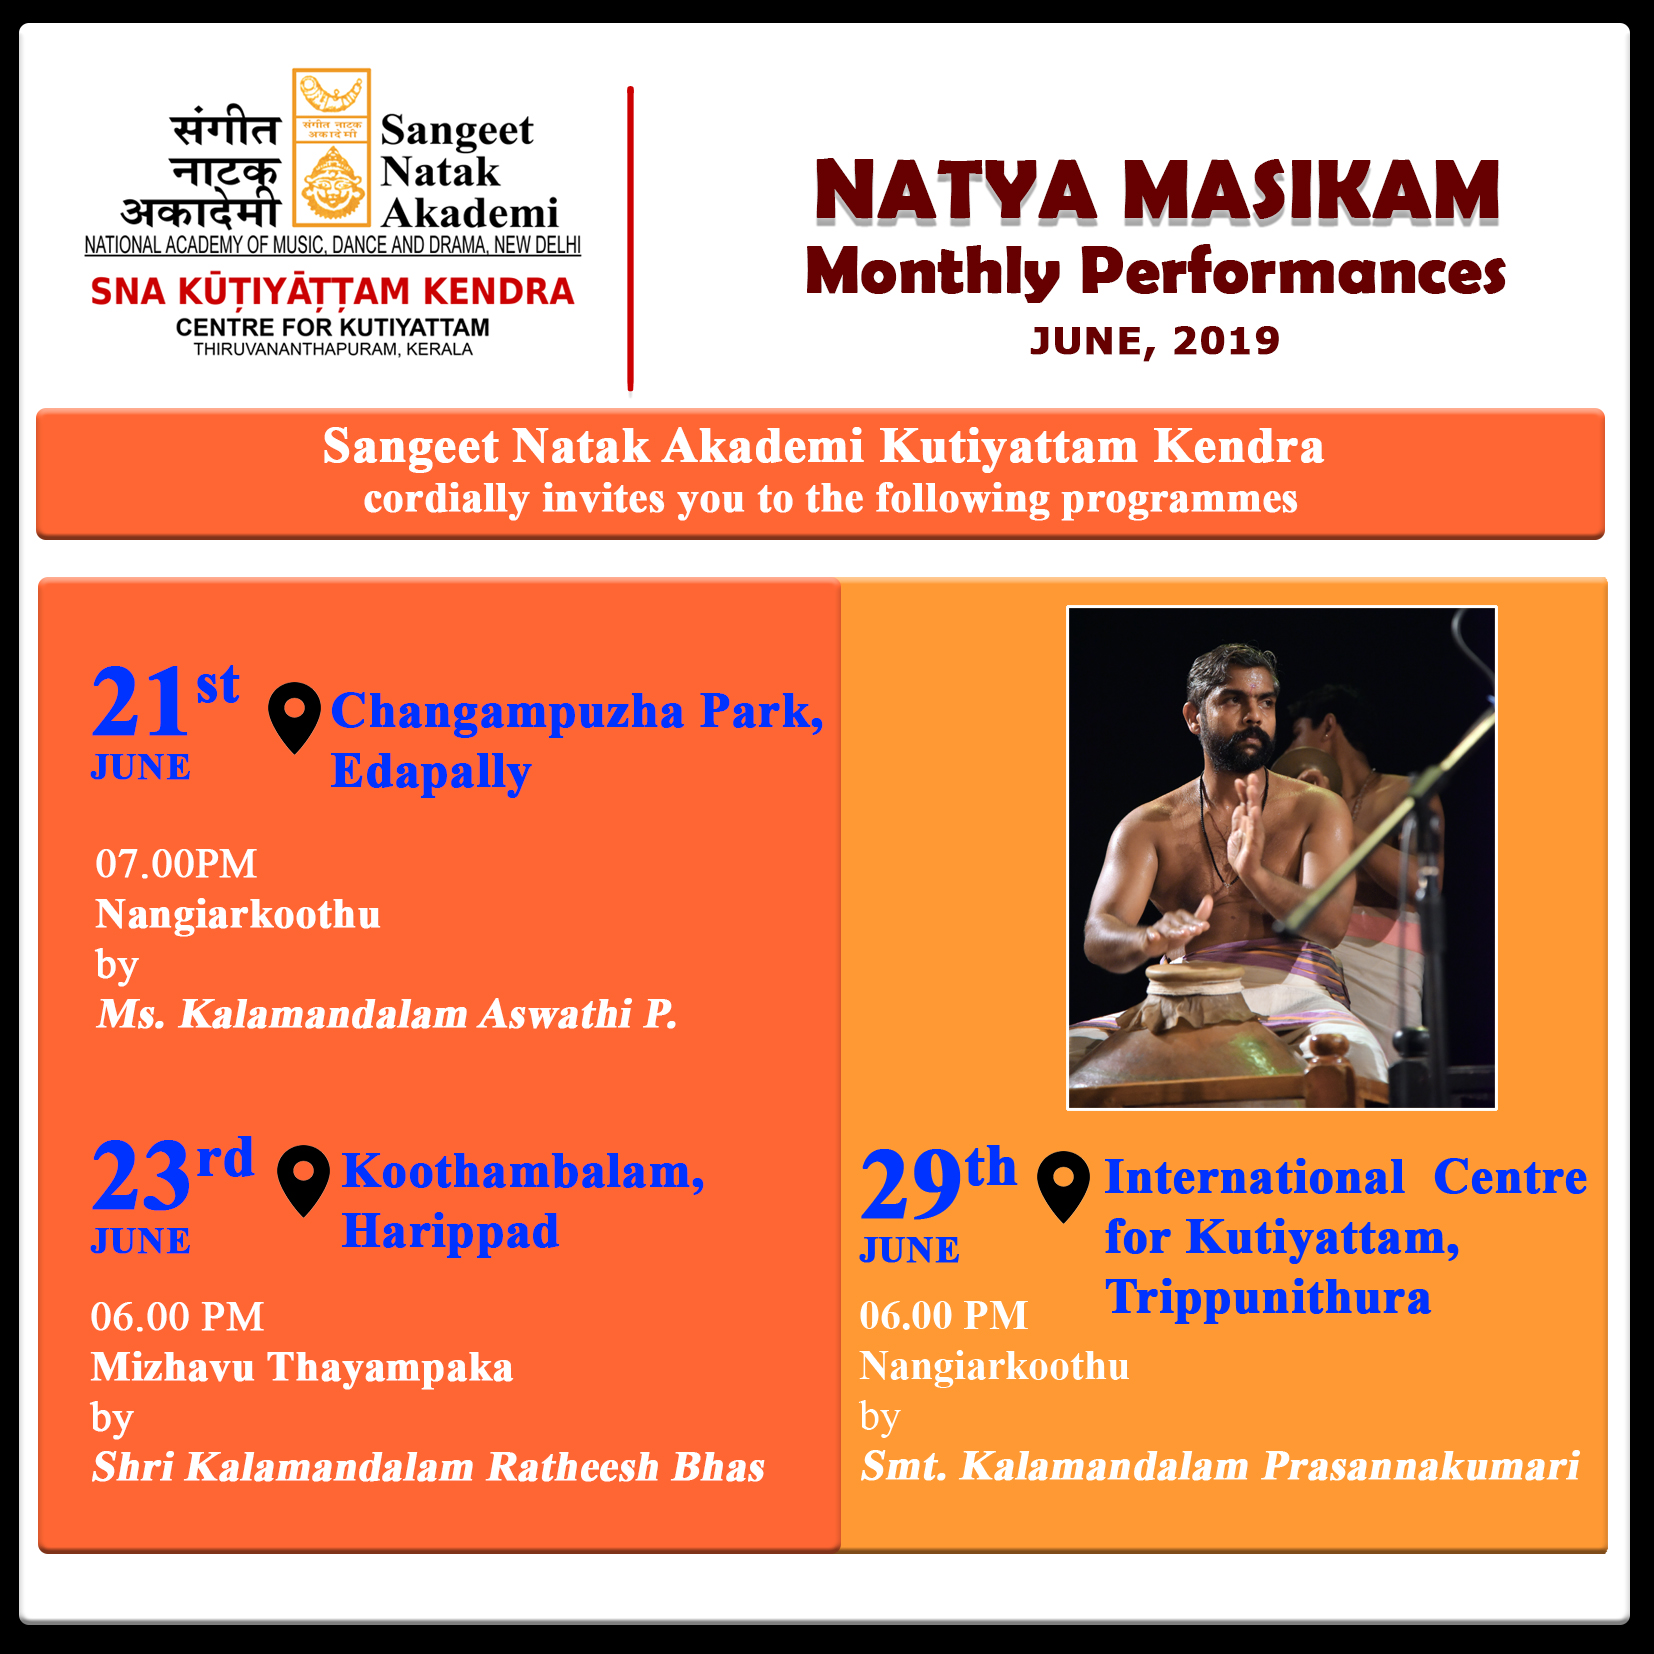 Natya Masikam Monthly Performances